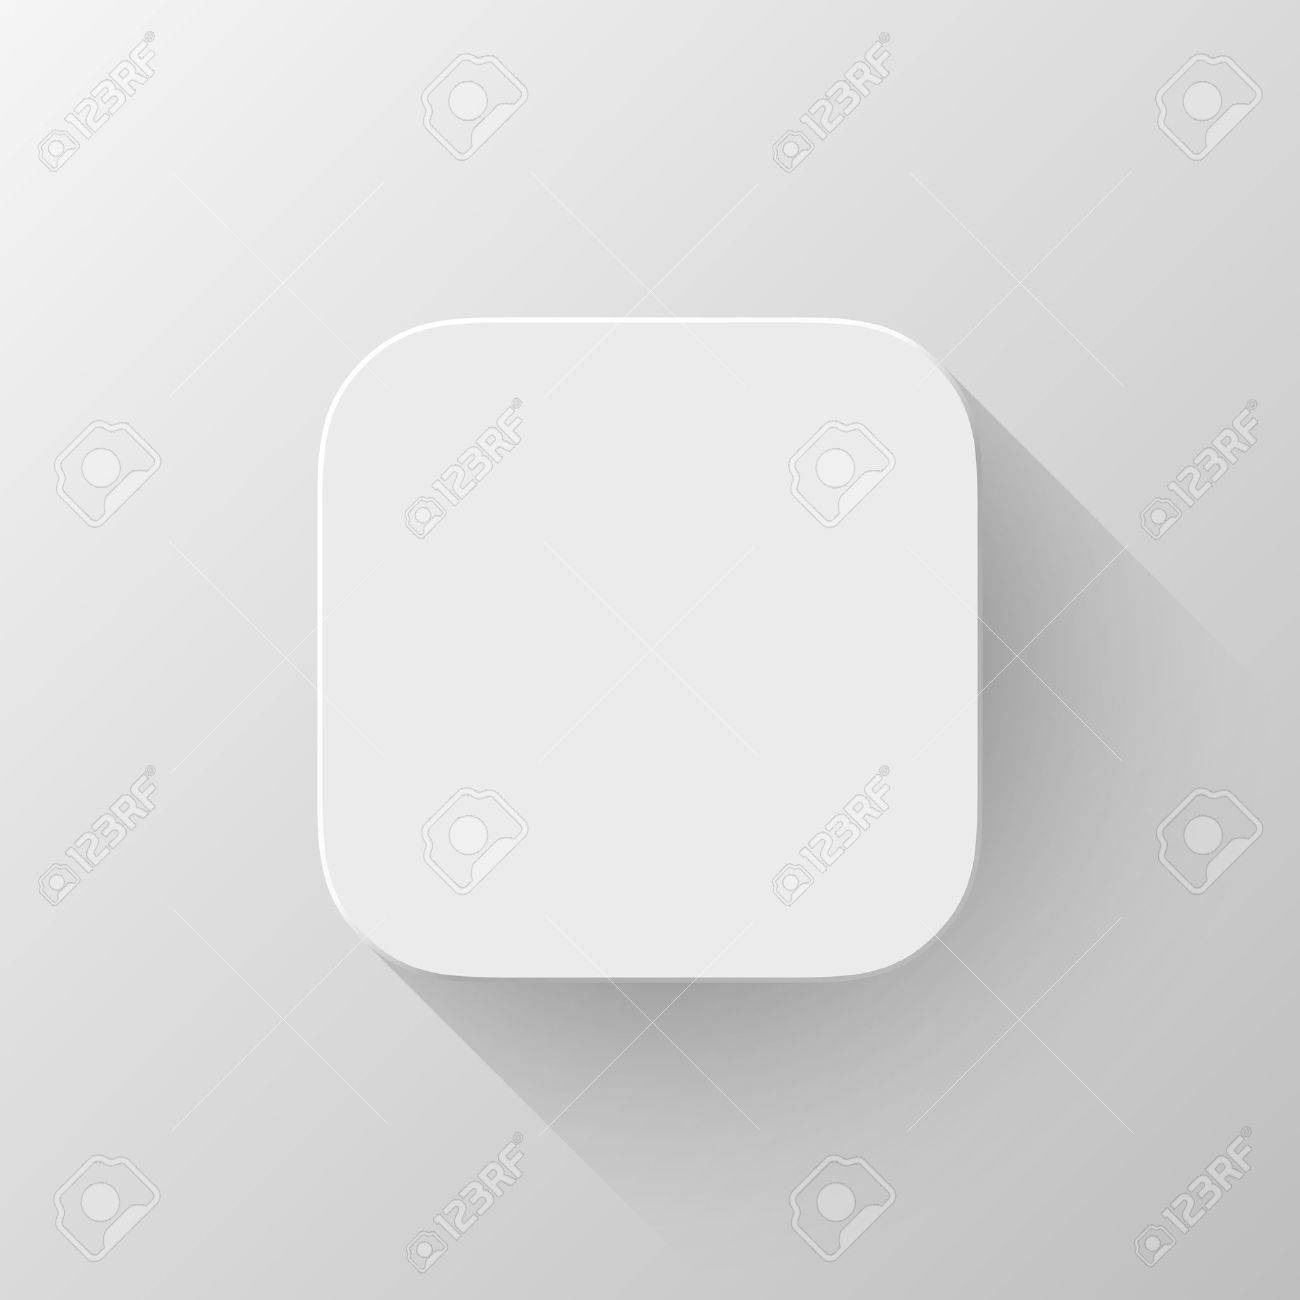 White Technology App Icon (button) Blank Template With Shadow ...